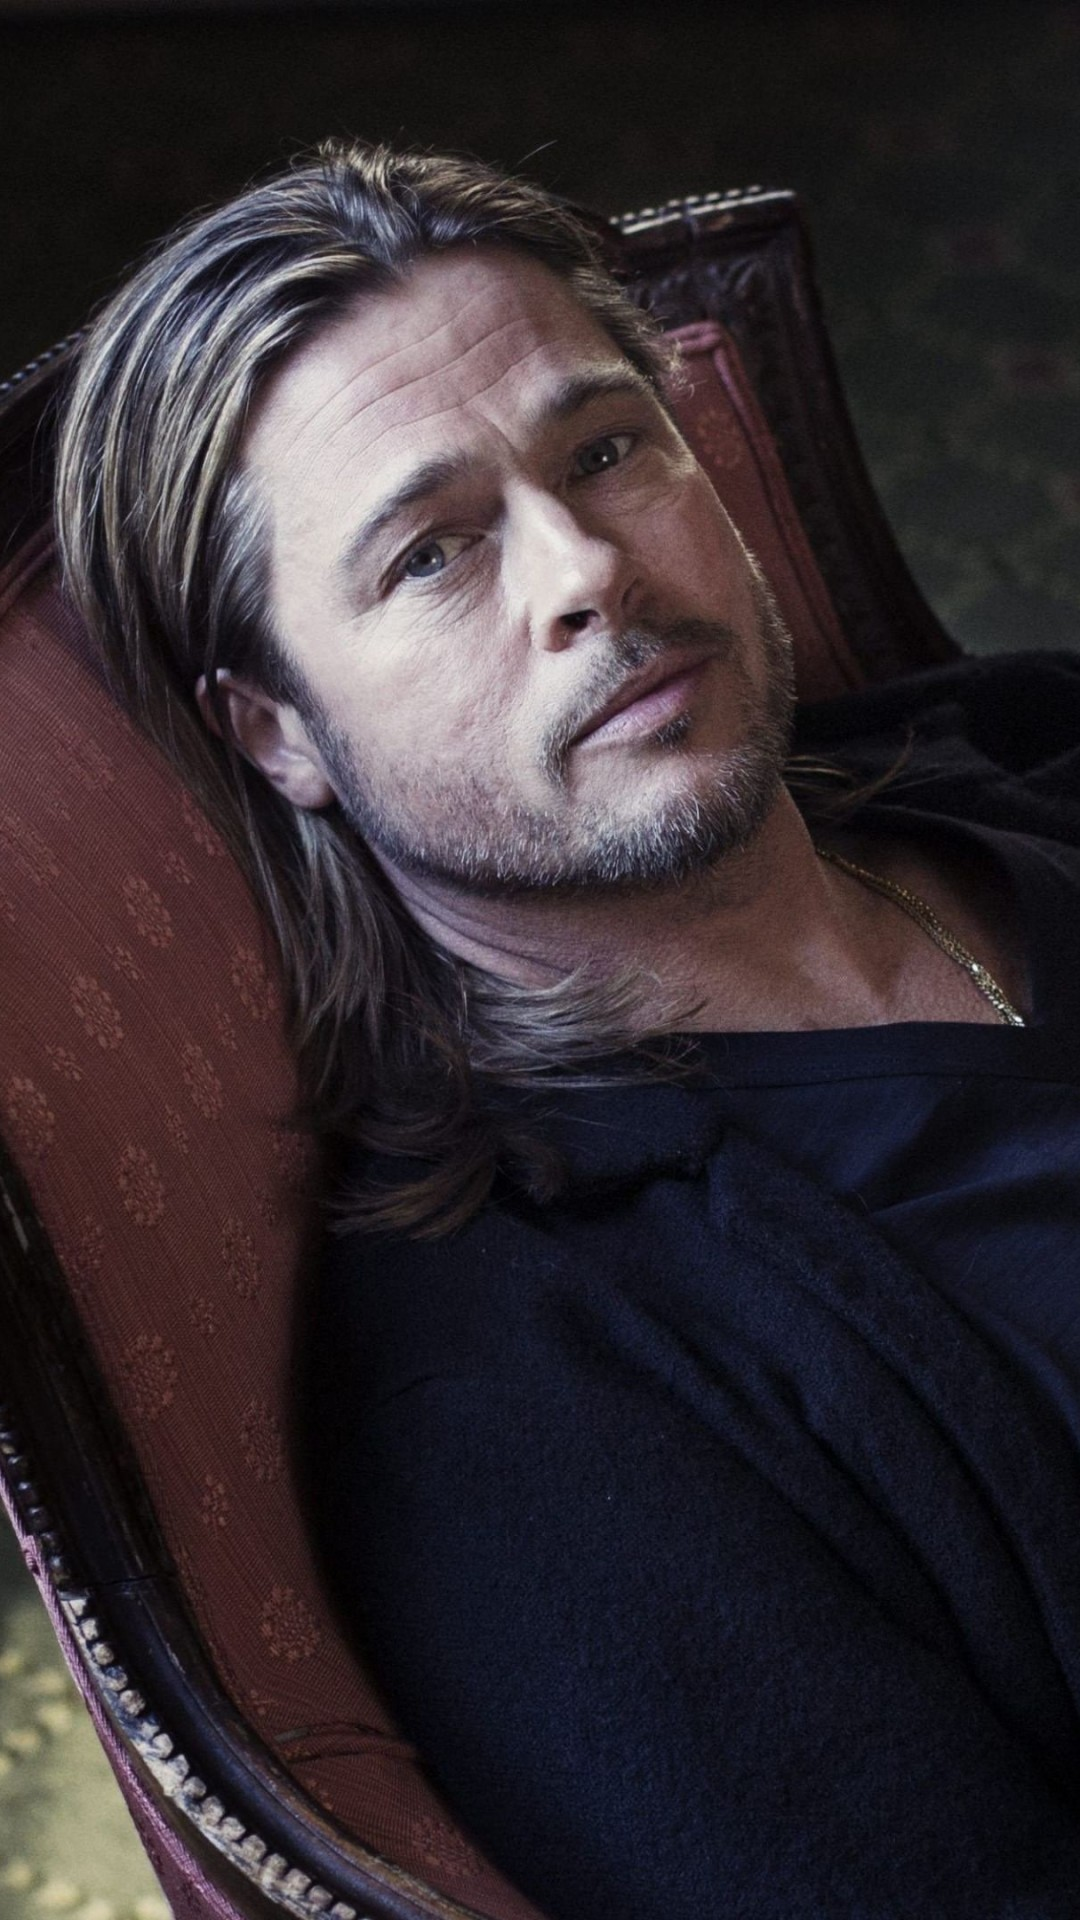 Brad Pitt Sitting On Chair Wallpaper for SAMSUNG Galaxy S5